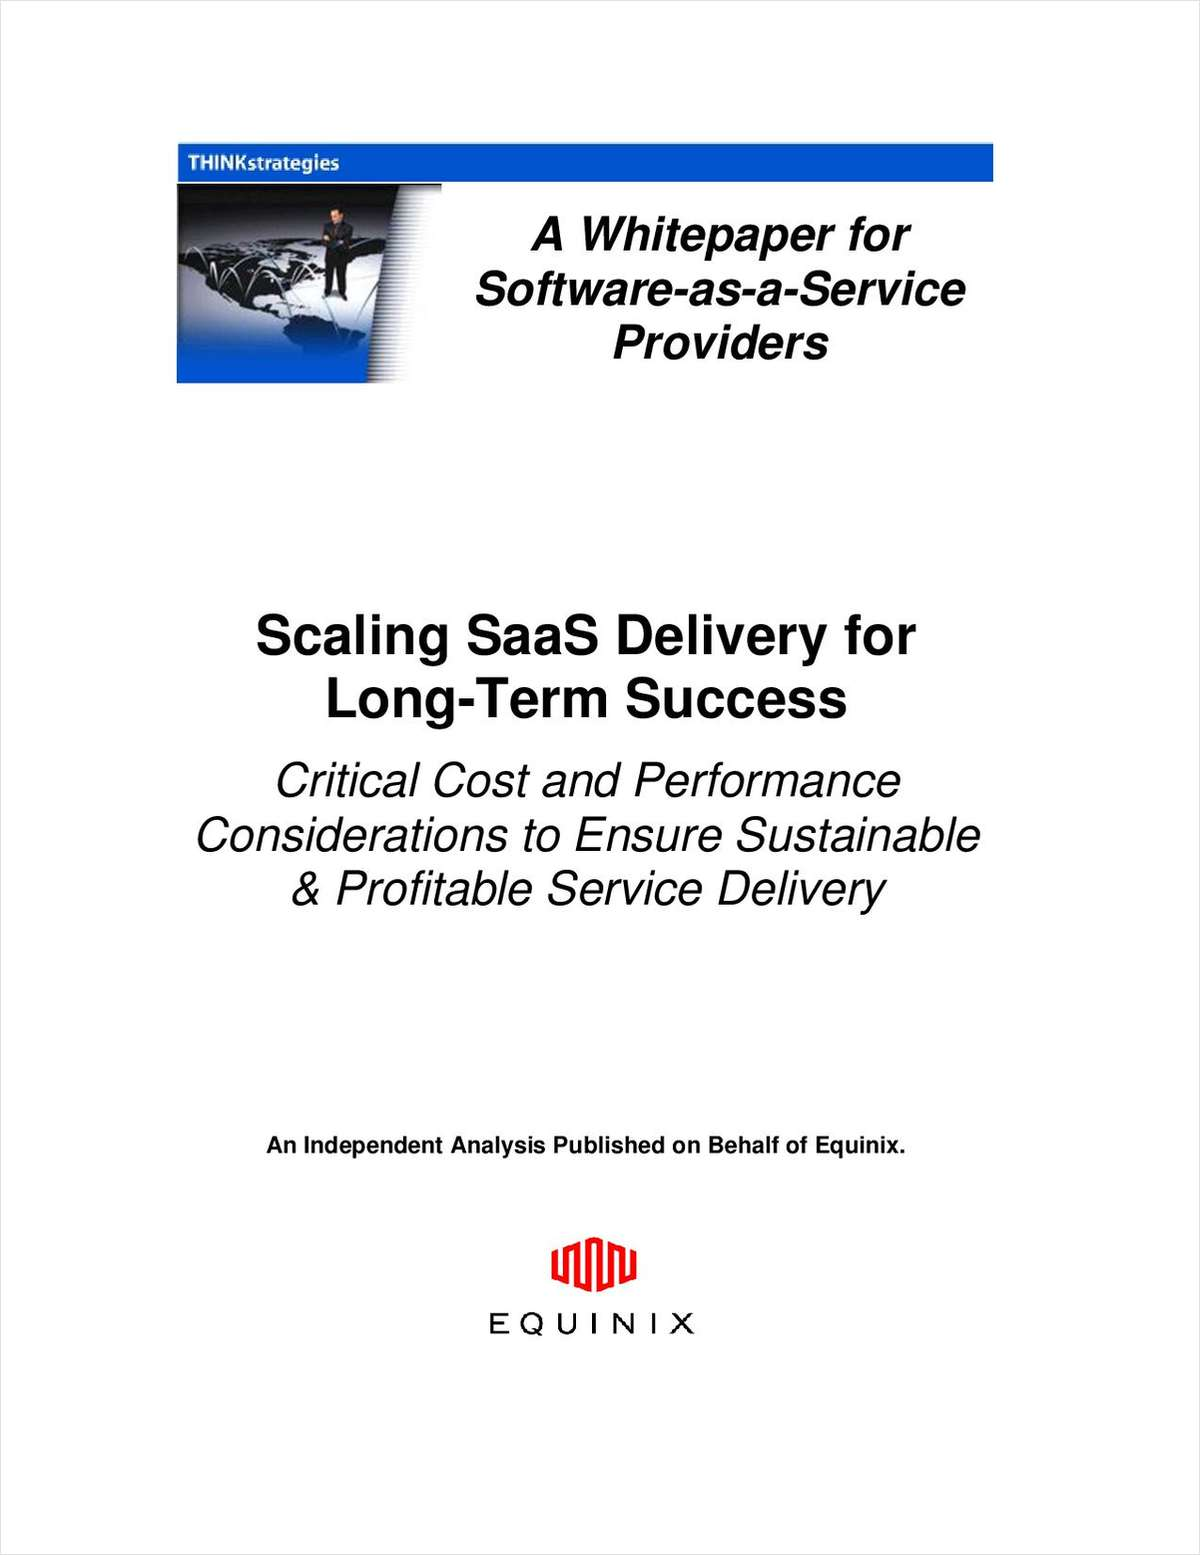 Scaling SaaS Delivery for Long-Term Success